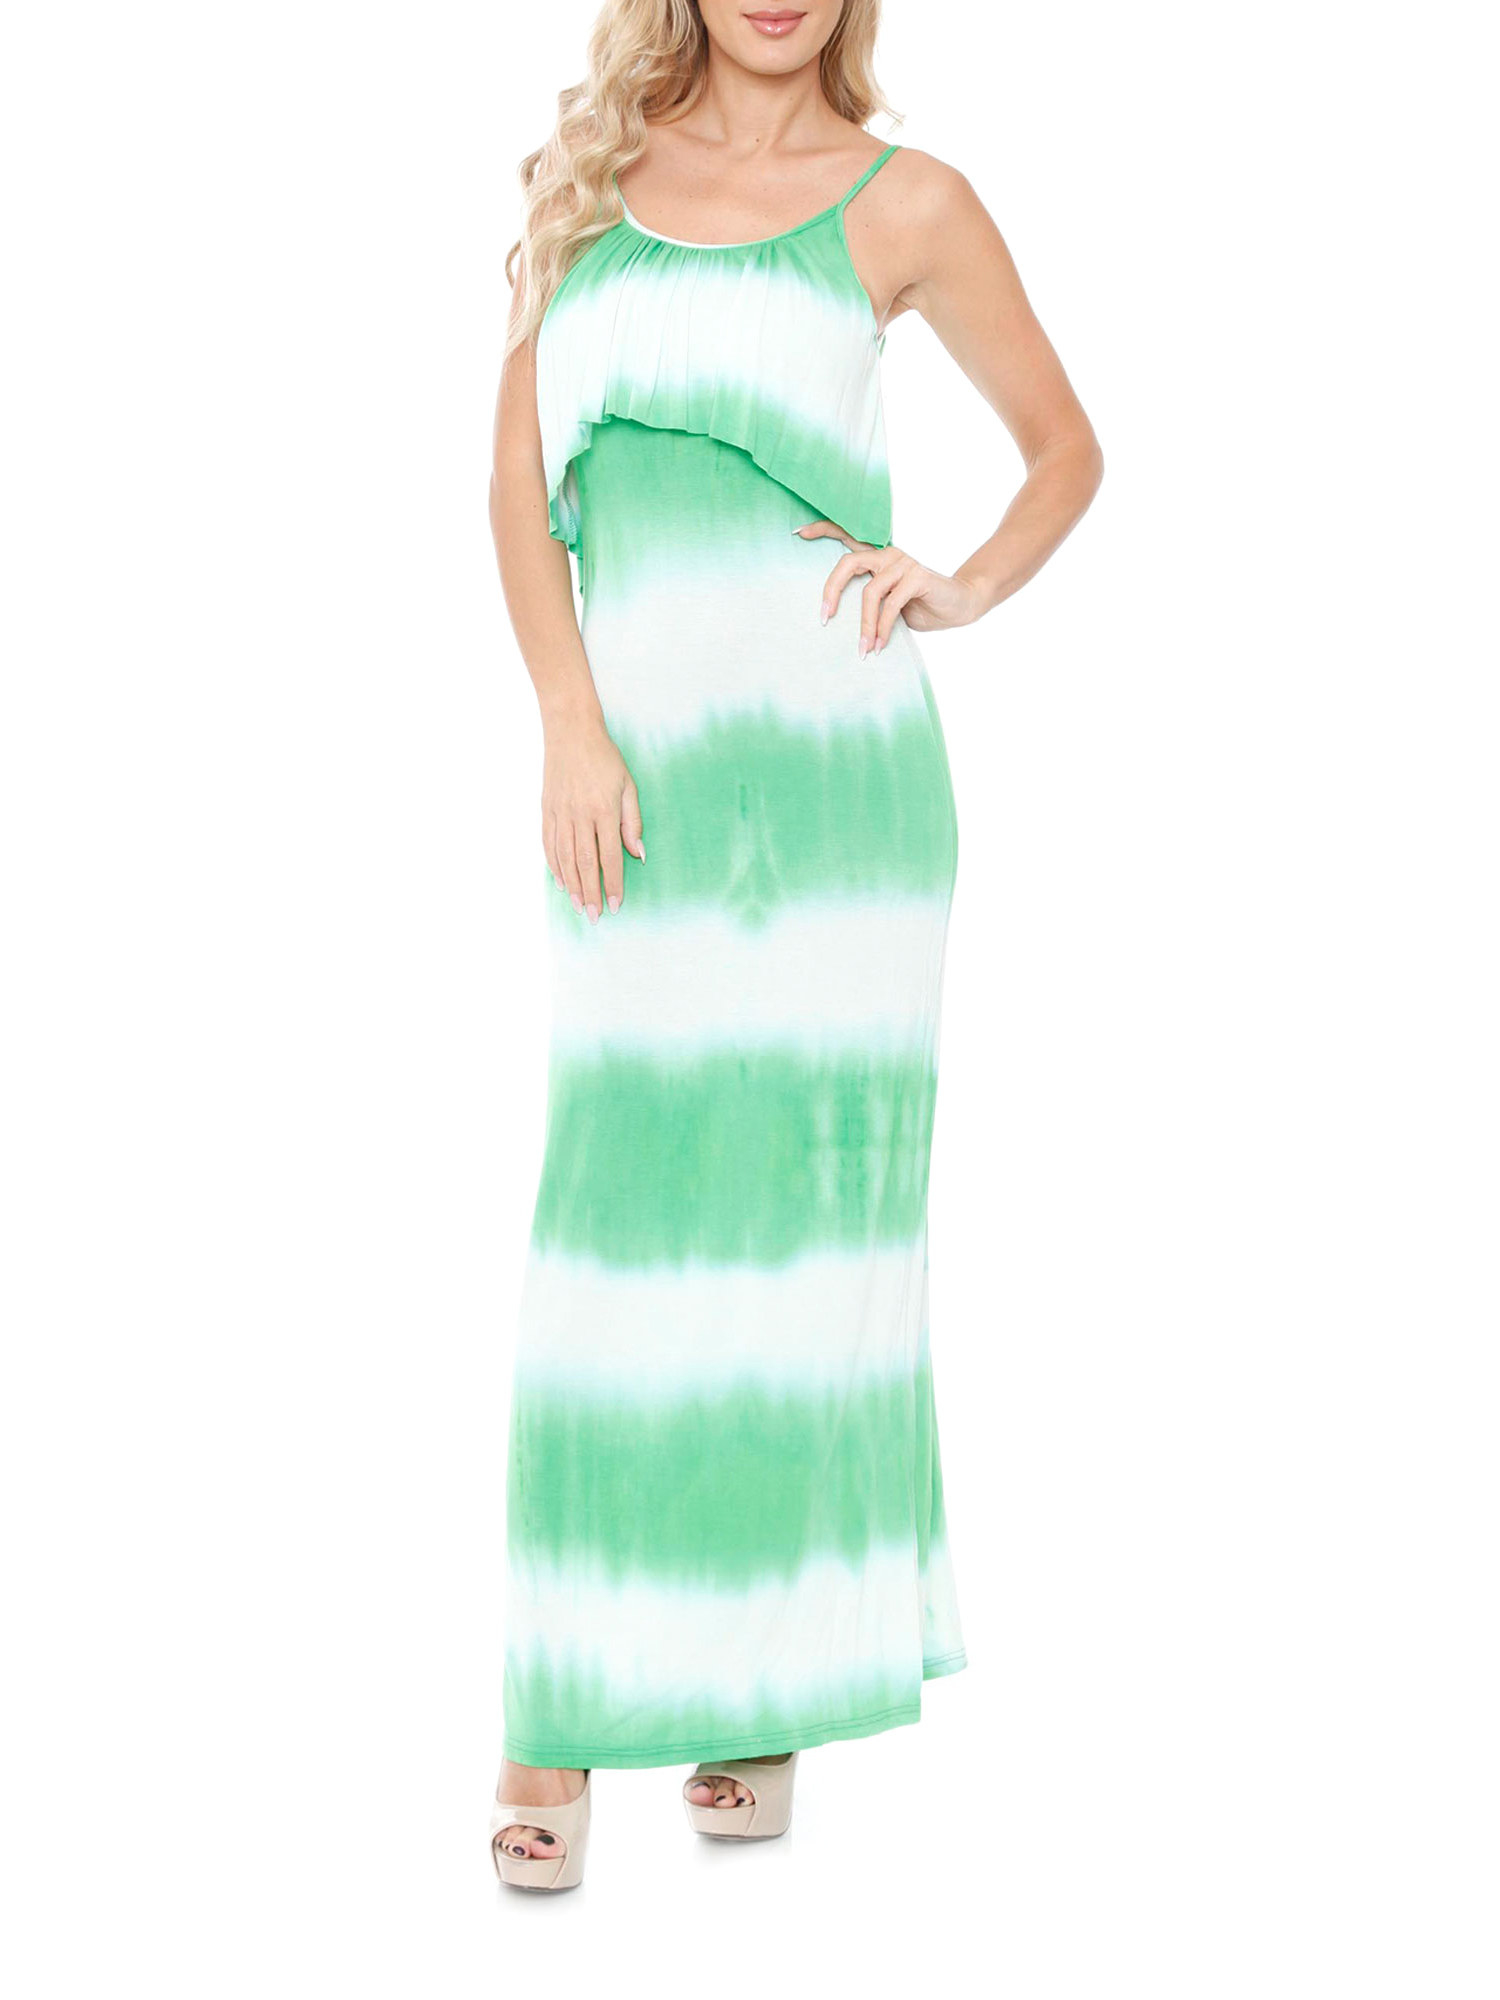 model in a maxi dress with green and white tie dye stripes